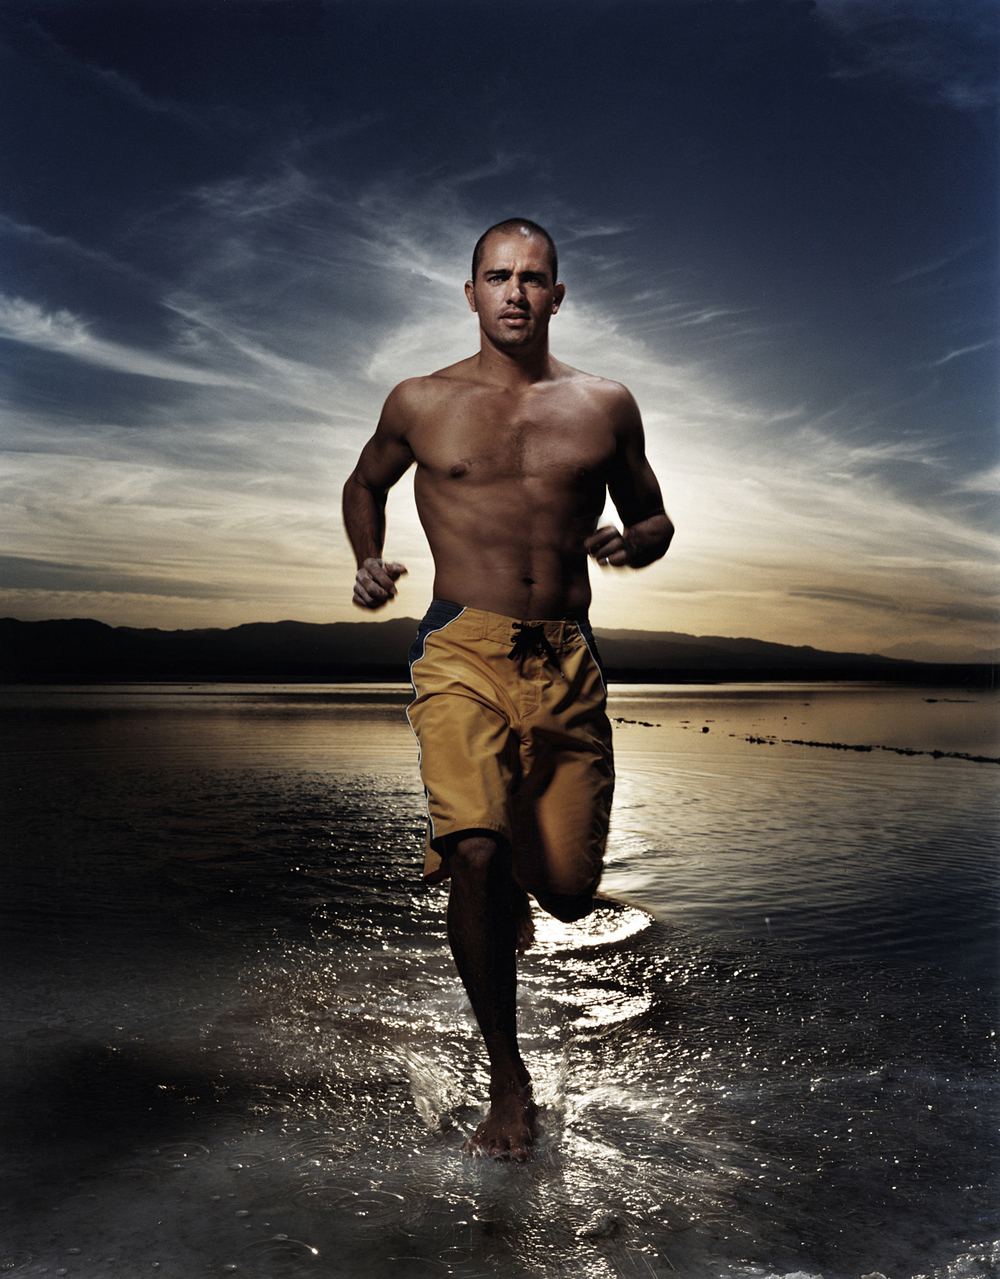 kelly slater_5mb_v2.jpg